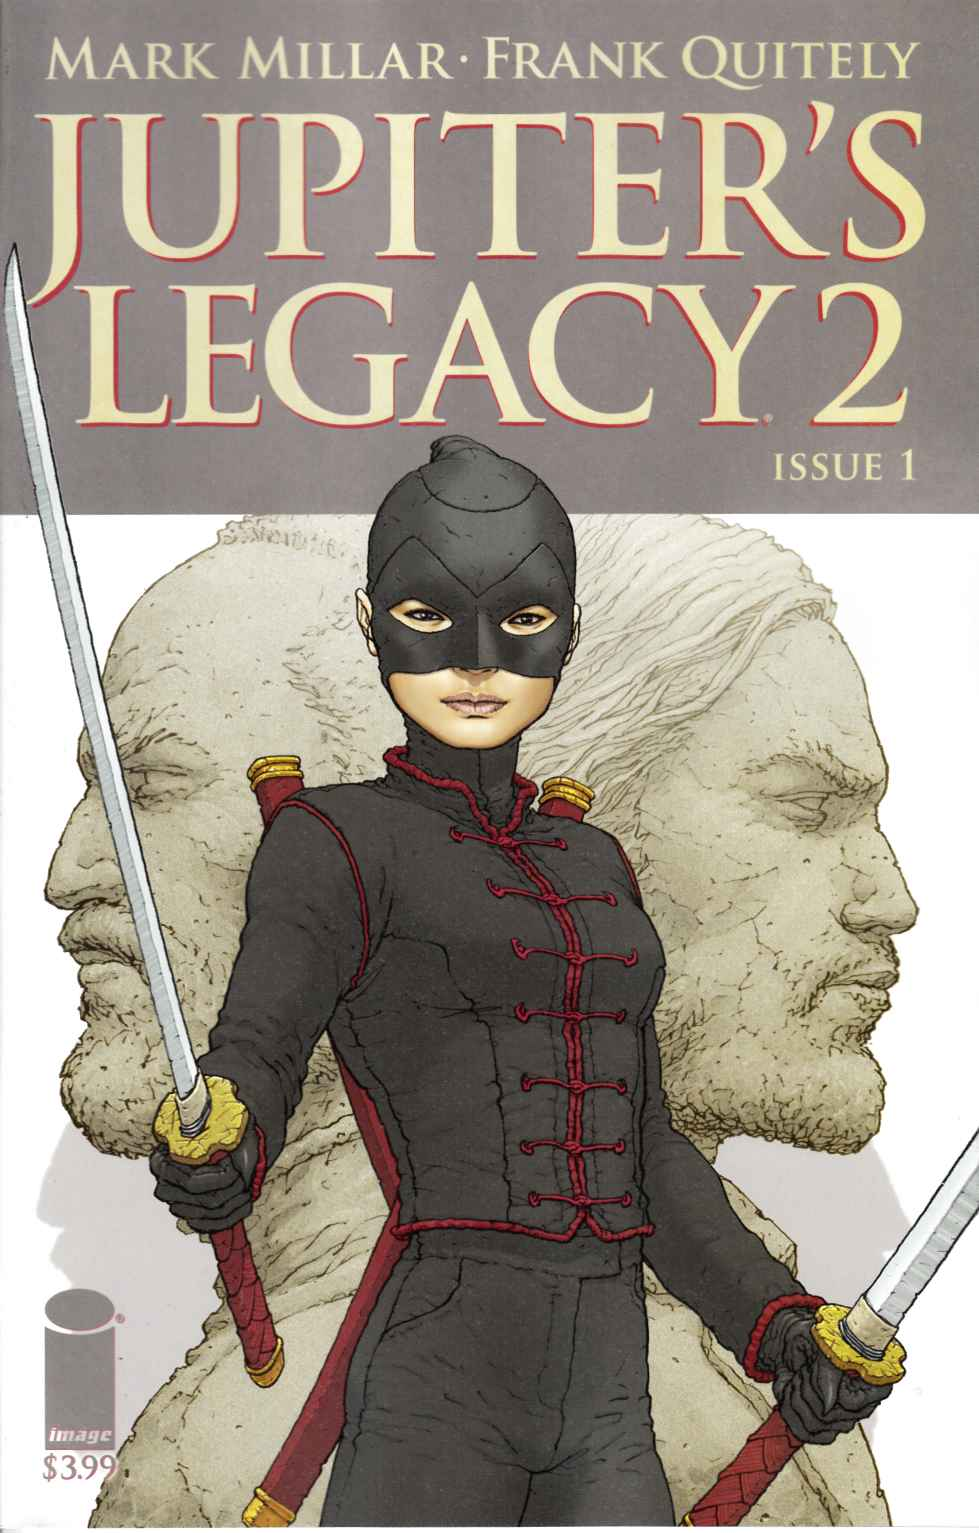 Jupiters Legacy Vol 2 #1 Cover A [Image Comic] THUMBNAIL